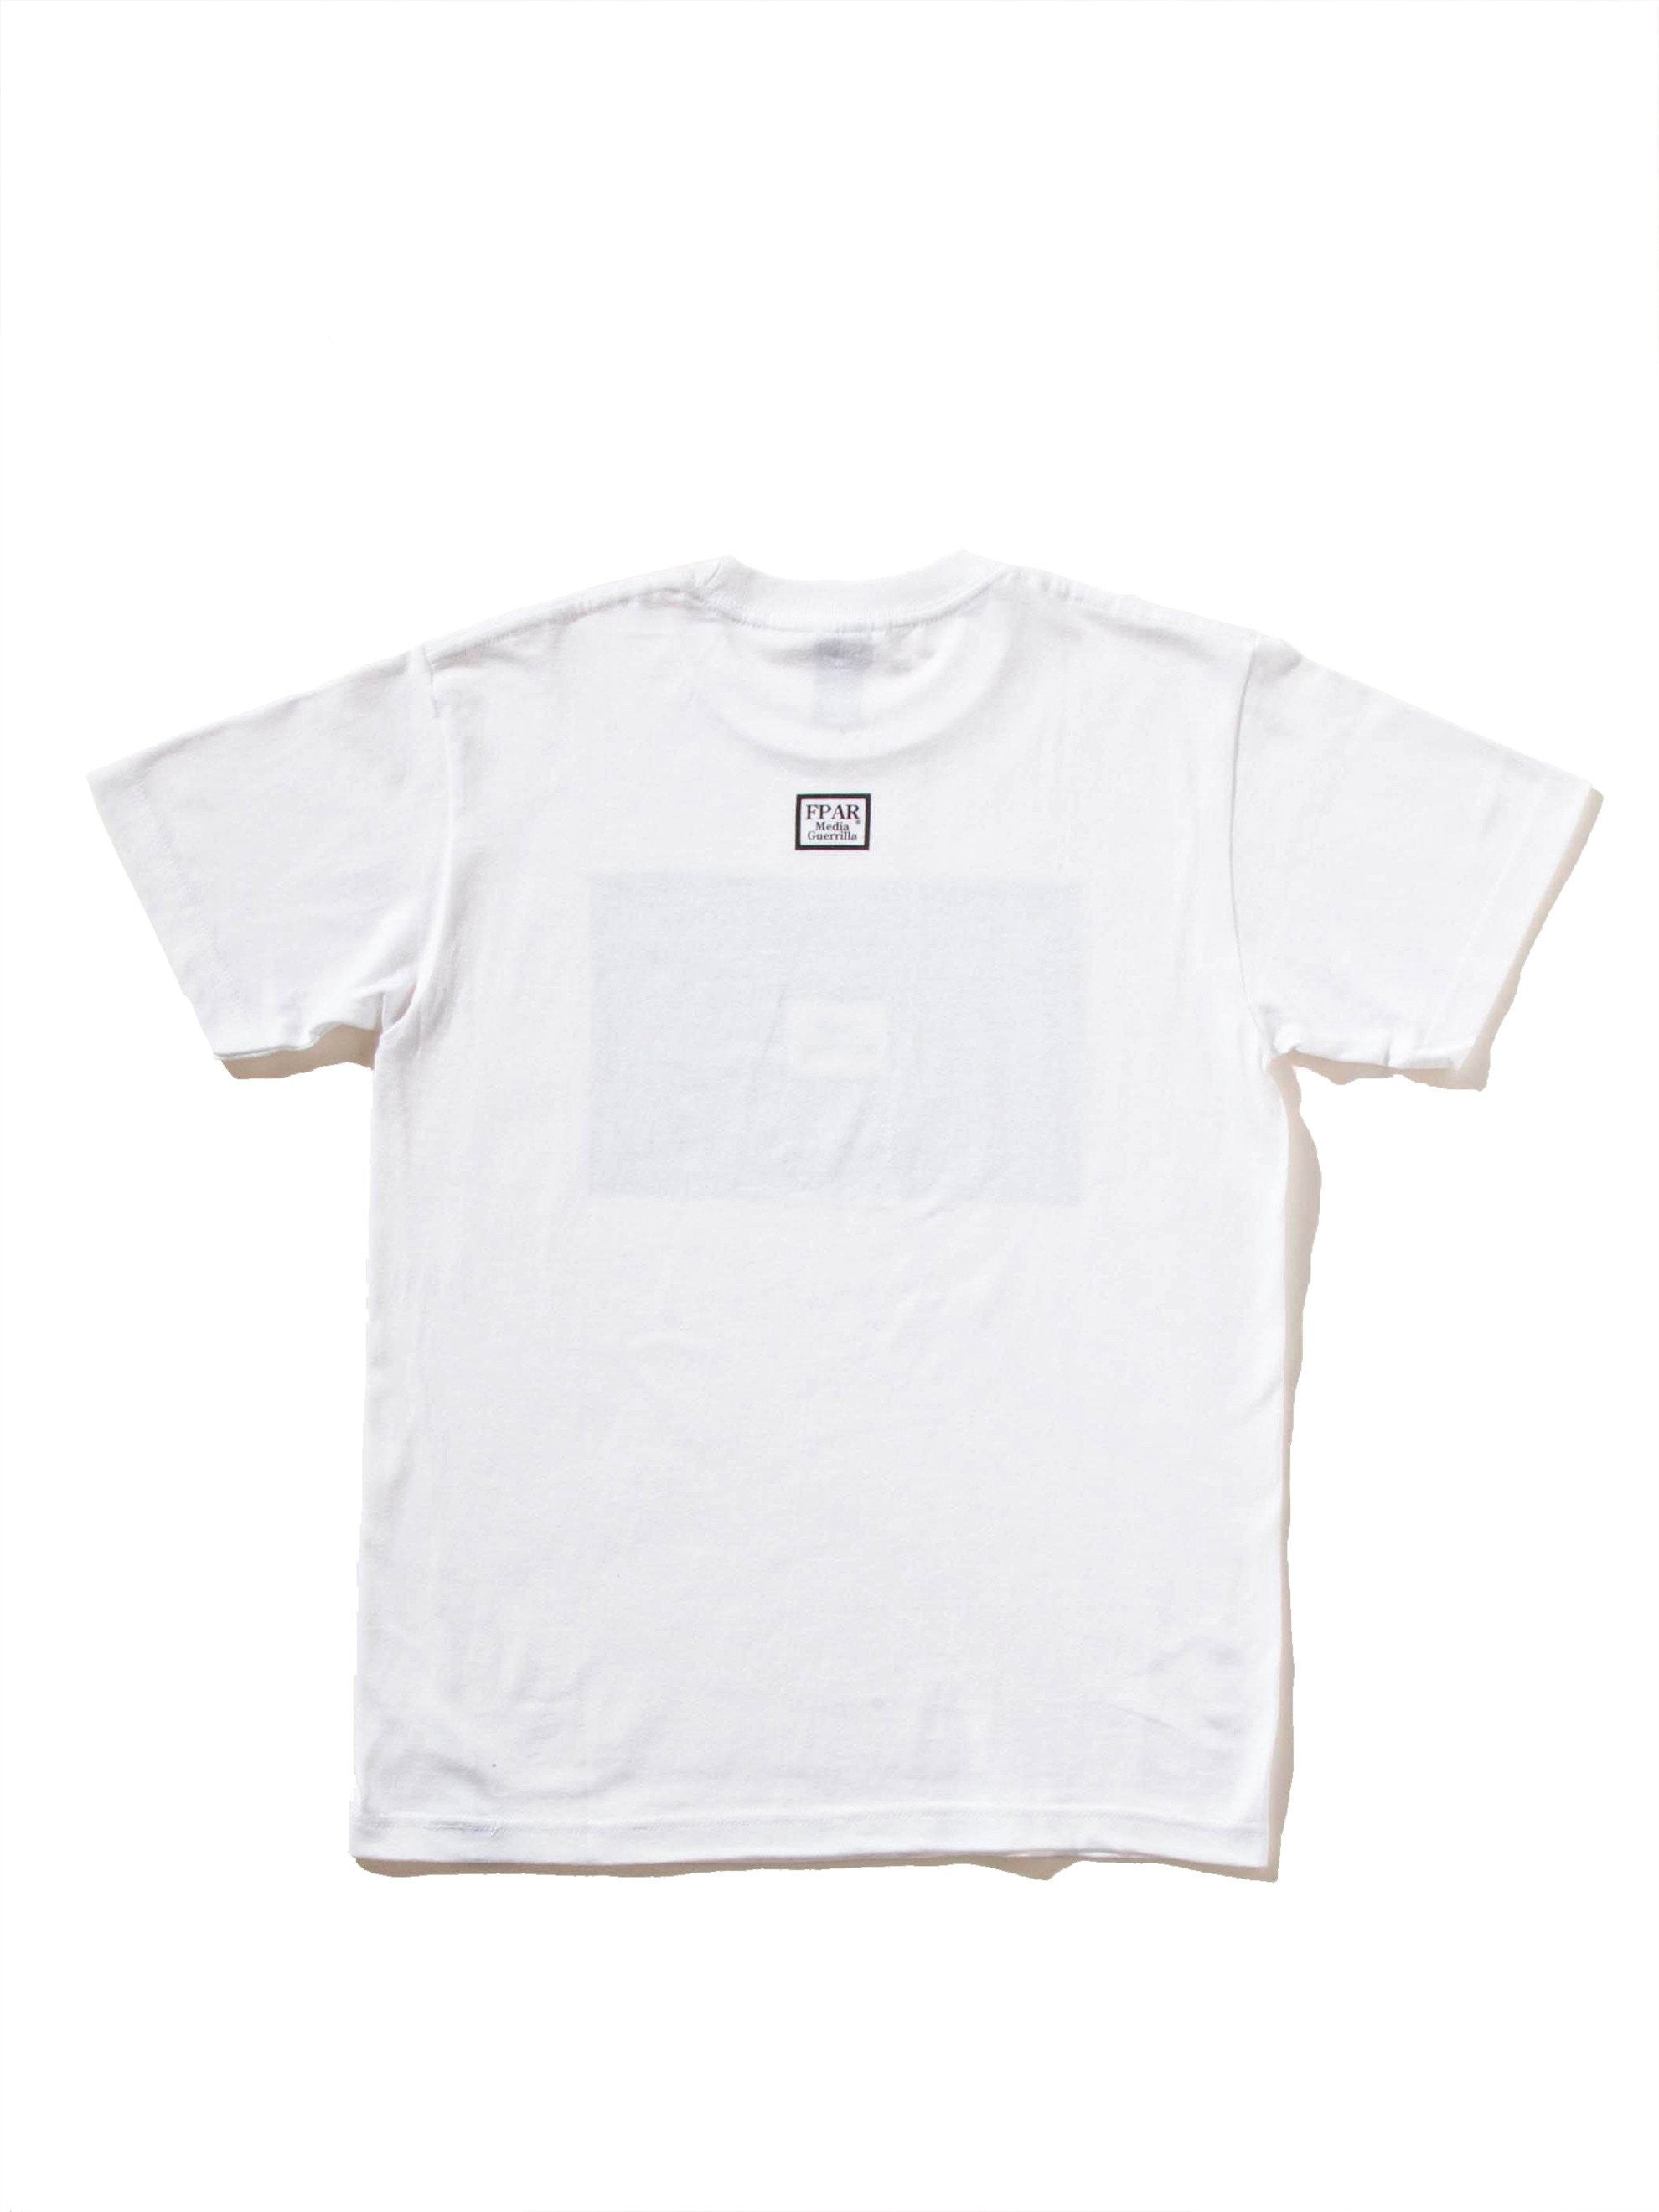 White Doubt Everything T-Shirt 6